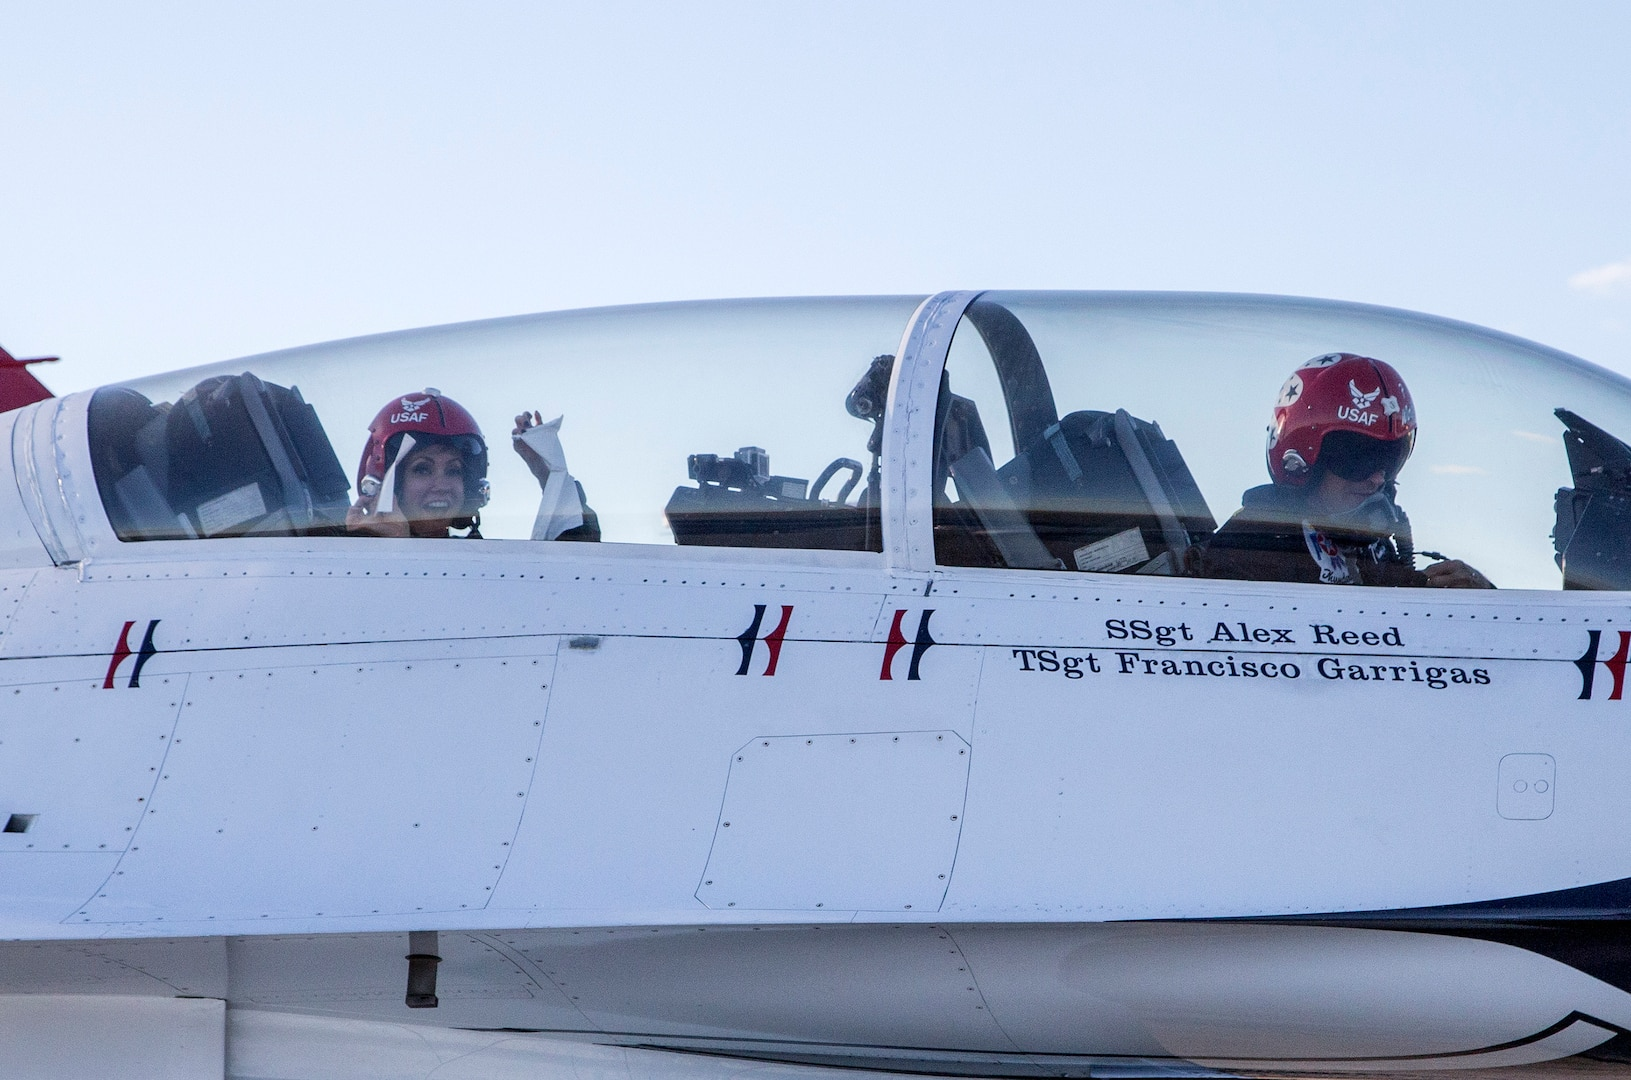 """Maj. Tyler Ellison, U.S. Air Force Air Demonstration Squadron """"Thunderbirds"""" operations officer, prepares to depart with passenger Delaine Mathieu, News 4 San Antonio co-anchor, for a media flight Oct. 26, 2015 at Joint Base San Antonio-Randolph, Texas. The Thunderbirds are performing in the 2015 Air Show and Open House to be held at JBSA-Randolph Oct. 31 and Nov. 1. (U.S. Air Force photo by Johnny Saldivar/Released)"""